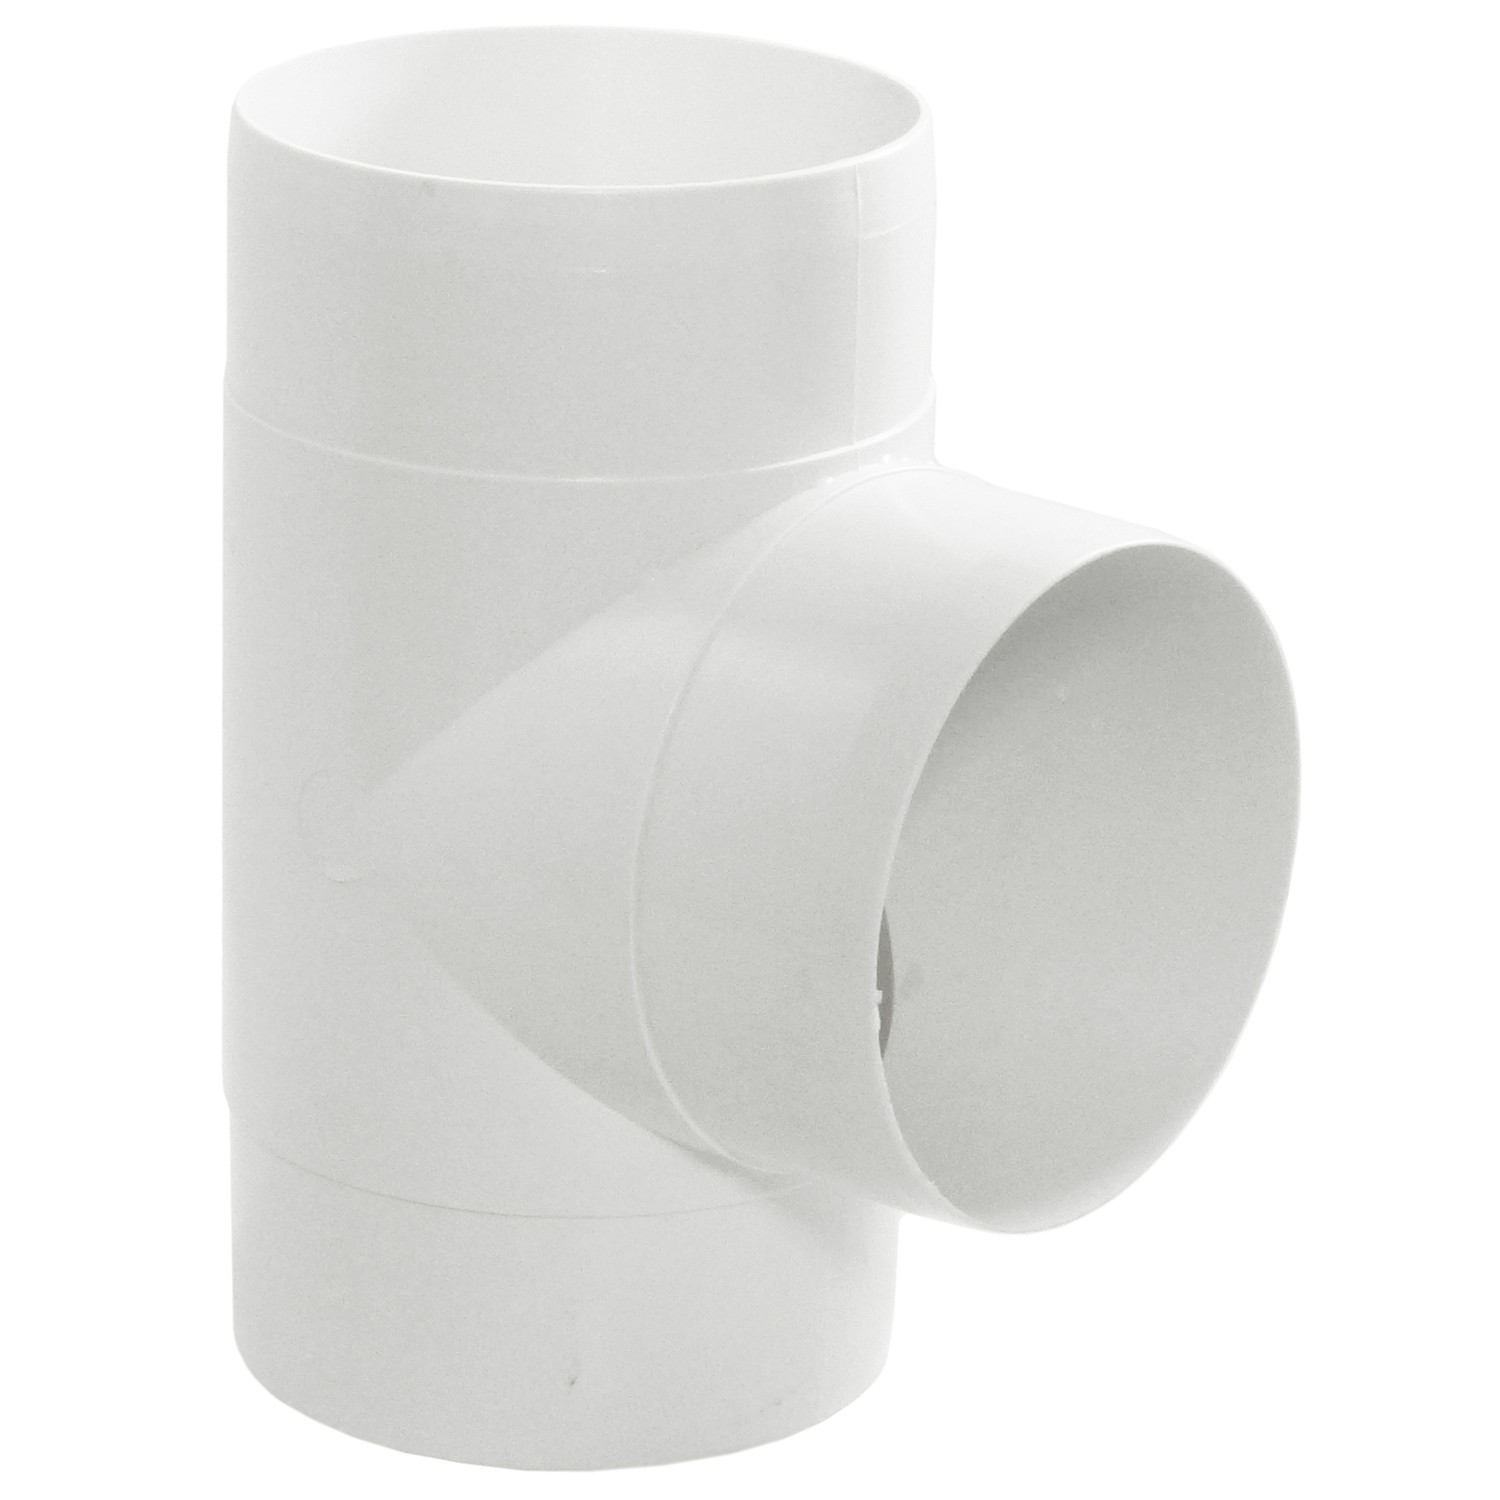 Manrose Round Ducting Pipe T Piece - White, 100mm